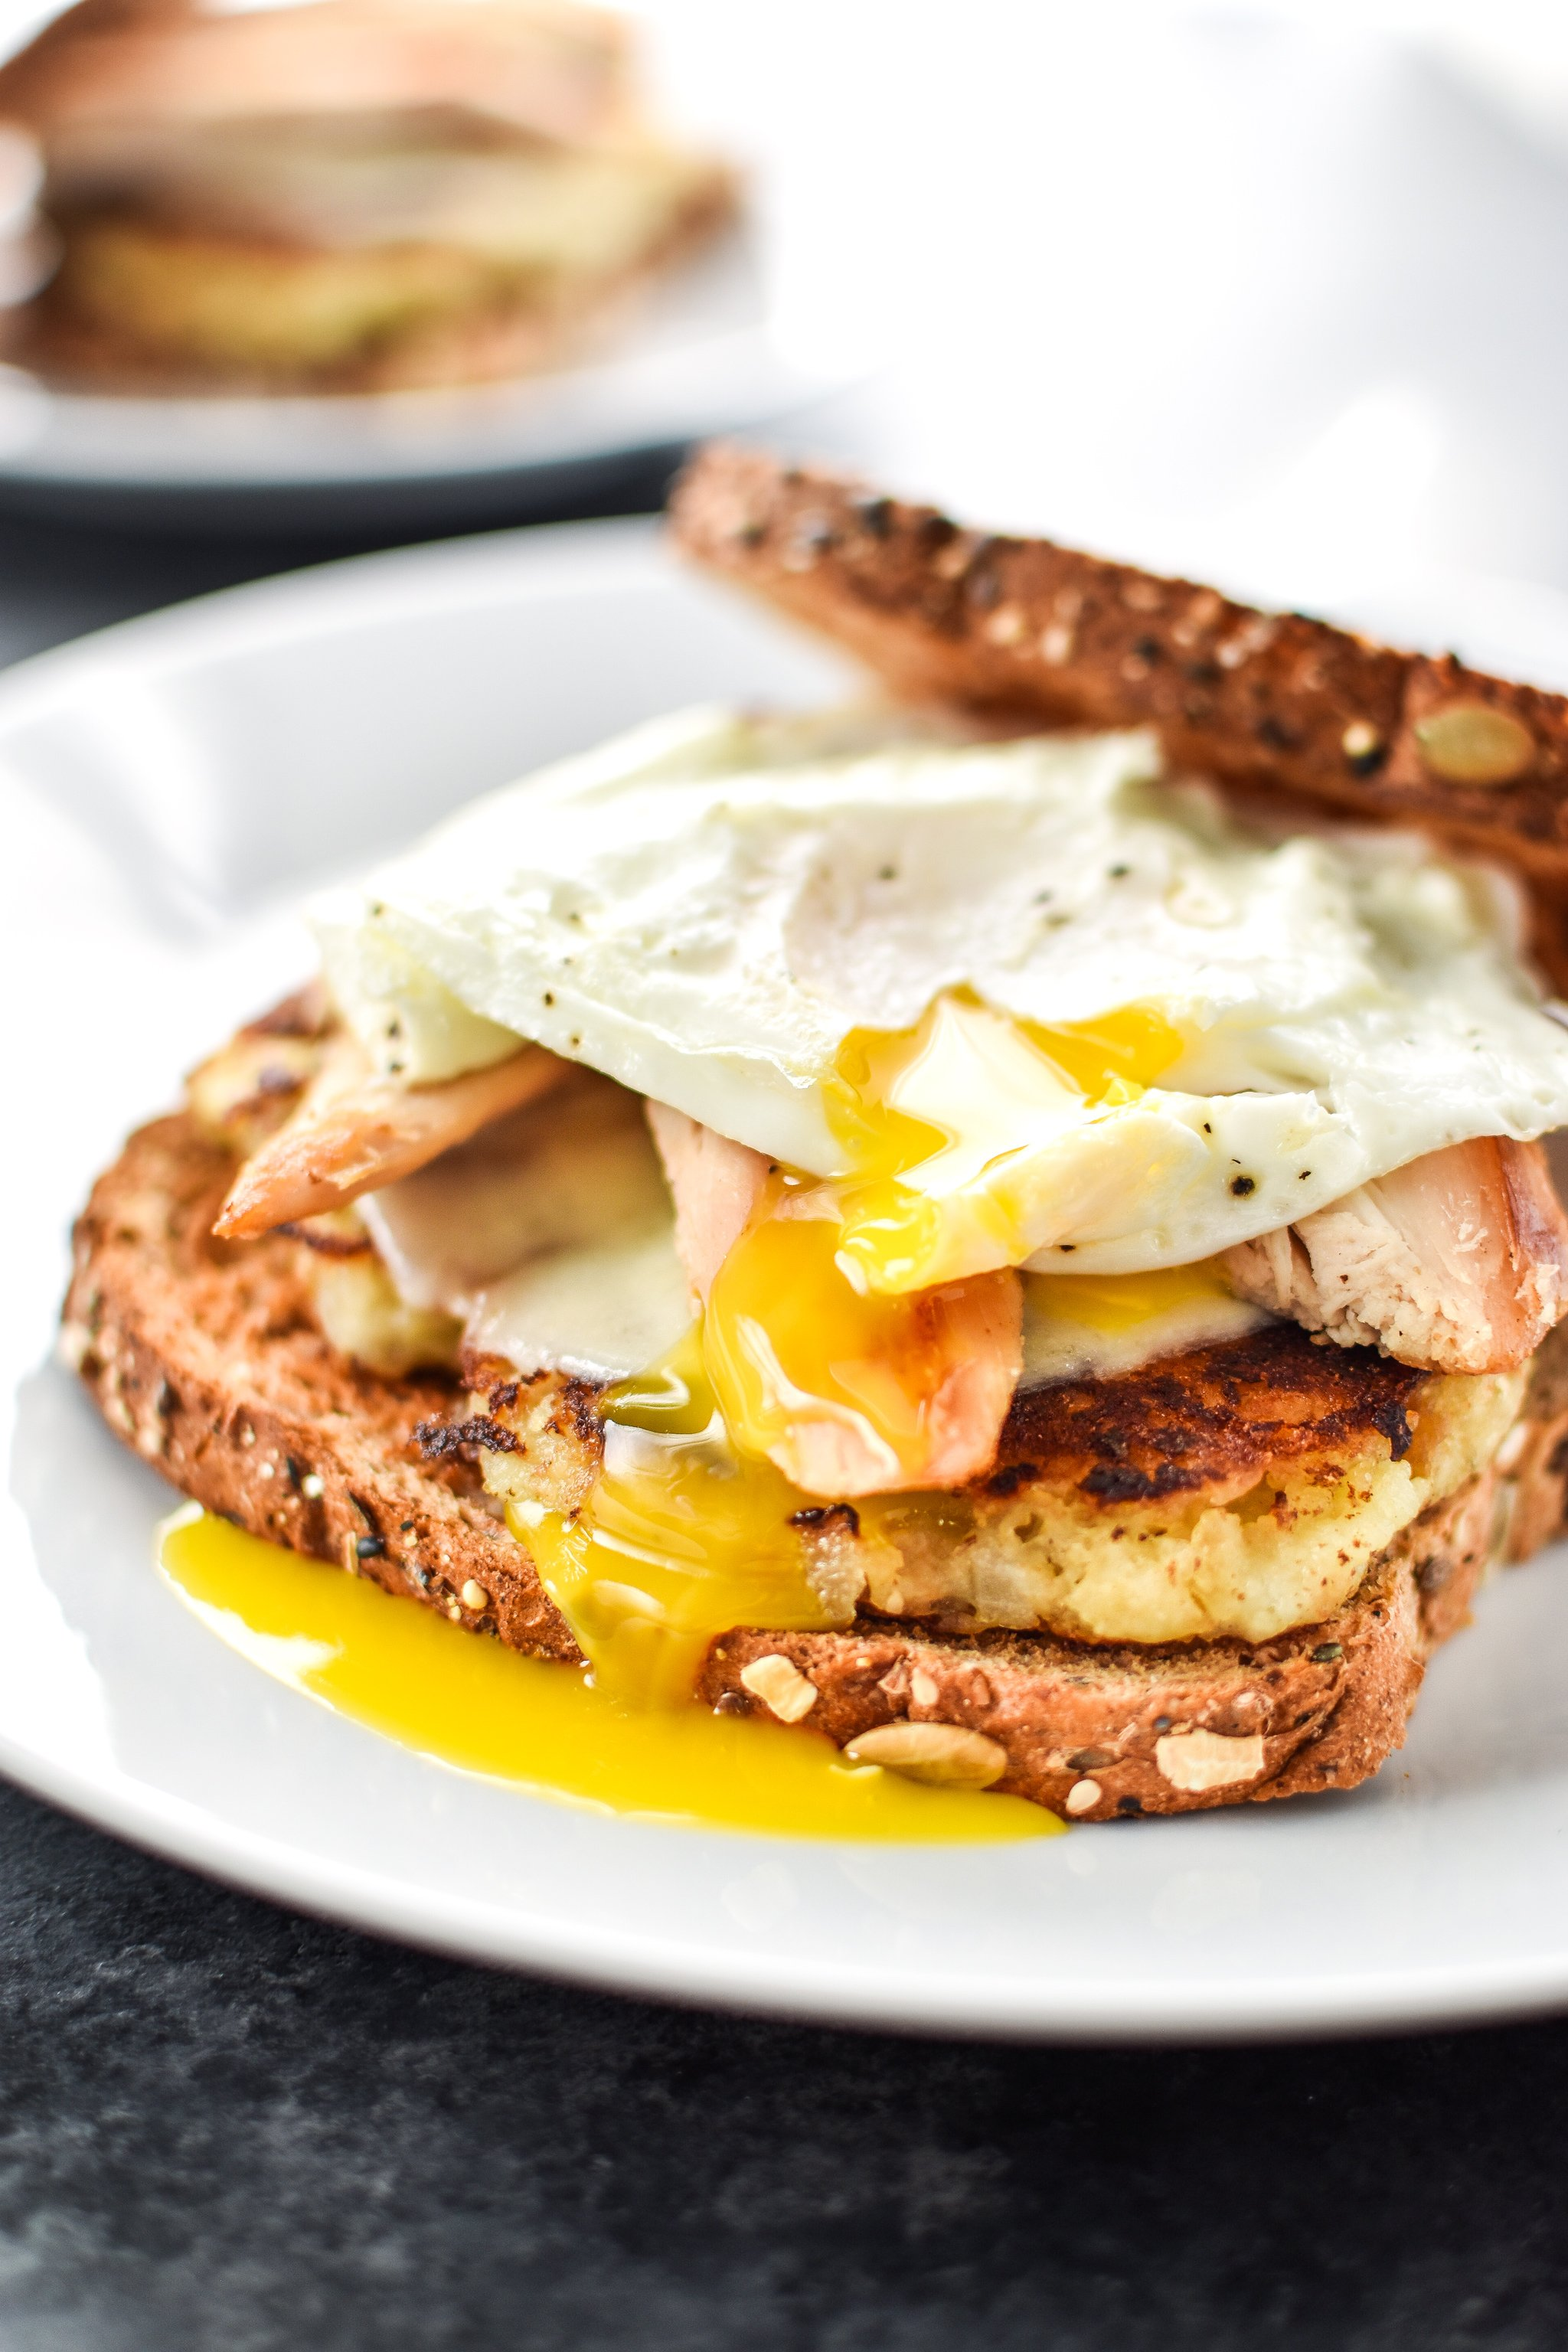 Ultimate Leftover Turkey Breakfast Sandwich - The best use of your holiday leftovers! Stuffing, mashed potatoes, turkey, topped with a soft yolk fried egg! ProjectMealPlan.com